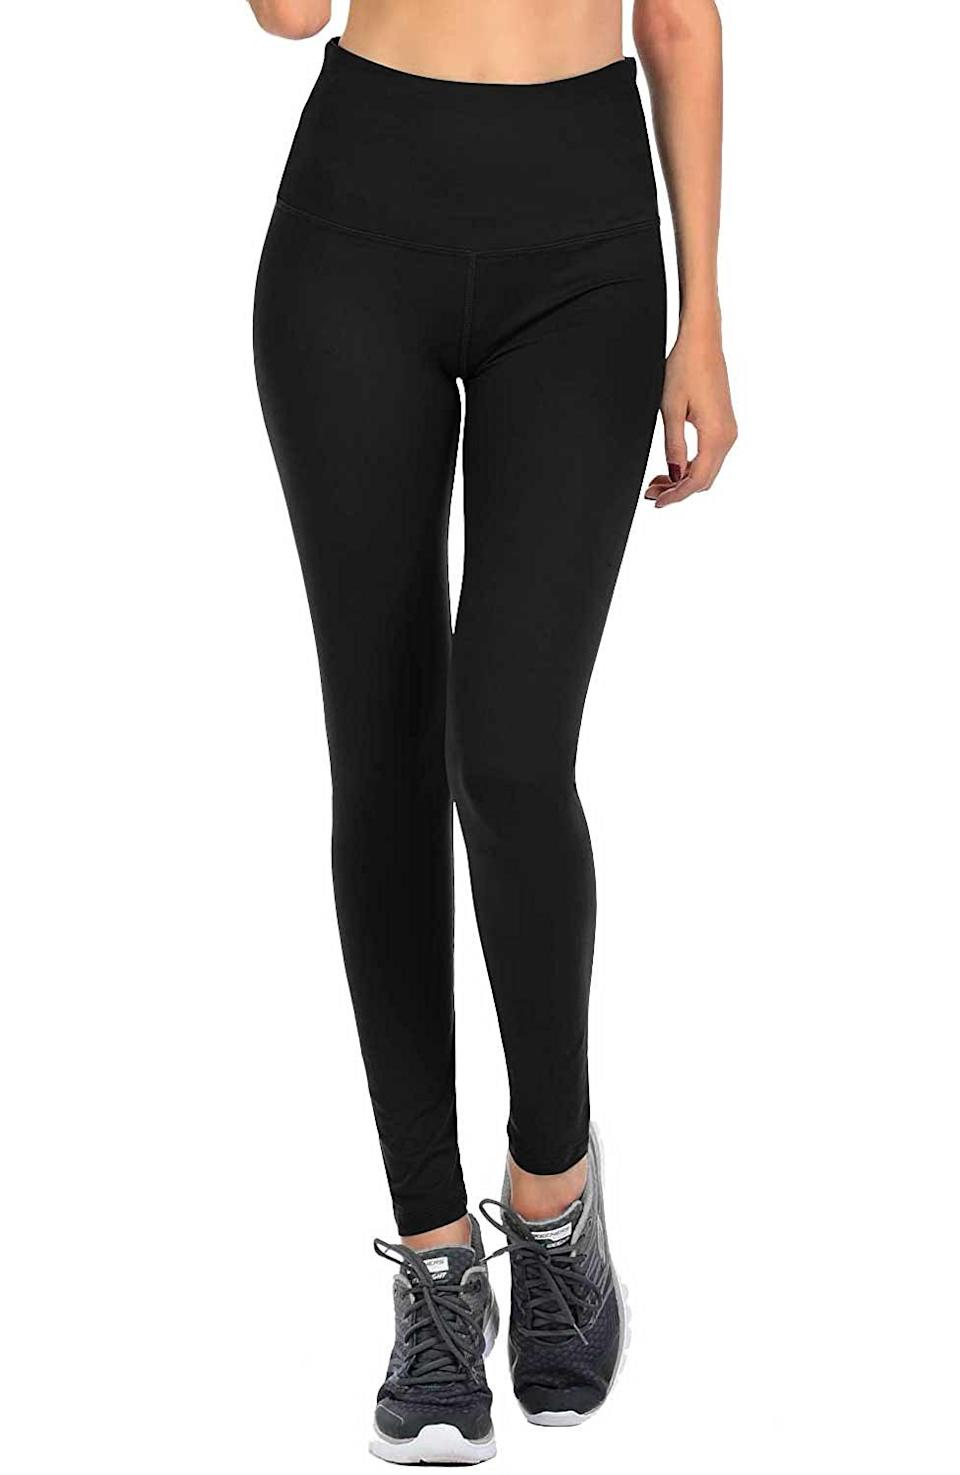 """<strong><h3>Viv Collection: The """"One Size Fits All"""" Legging</h3></strong><br>This pair comes in a wide range of sizes, two different lengths, and whopping 14 colors. <br><br><strong>The hype:</strong> 4.4 out of 5 stars and 4,304 reviews on Amazon<br><br><strong>What they're saying:</strong> """"I think after purchasing 6 pairs of these it's time to offer some feedback on them. These leggings are amazing!!! I held off on trying them for such a long time and wish I would of gotten them sooner!! They are soft and feel great. Even better than the ones ppl sell on Facebook!! Some ppl don't like the waistband but their yoga leggings have the wide waistband made of fabric is the elastic one is not your thing. They hold up well even after several washes. I never got a defective pair and I own 6 so far. Most are solid colored ones. I haven't gotten random holes in them. They even withstood my kittens digging their nails into them. Which for me is the ultimate test LOL. Seriously though, they're inexpensive, fit great (I got the regular fit not plus) and have a huge selection of colors and prints to choose from. For reference I have thick legs and thighs and usually wear M or L (depending on manufacturers) leggings. I've recommended these to a lit if ppl on social media and they all loved them..."""" - LC78, Amazon Review<br><br><strong>Viv Collection</strong> Signature Leggings, $, available at <a href=""""https://amzn.to/2GeRaxb"""" rel=""""nofollow noopener"""" target=""""_blank"""" data-ylk=""""slk:Amazon"""" class=""""link rapid-noclick-resp"""">Amazon</a>"""